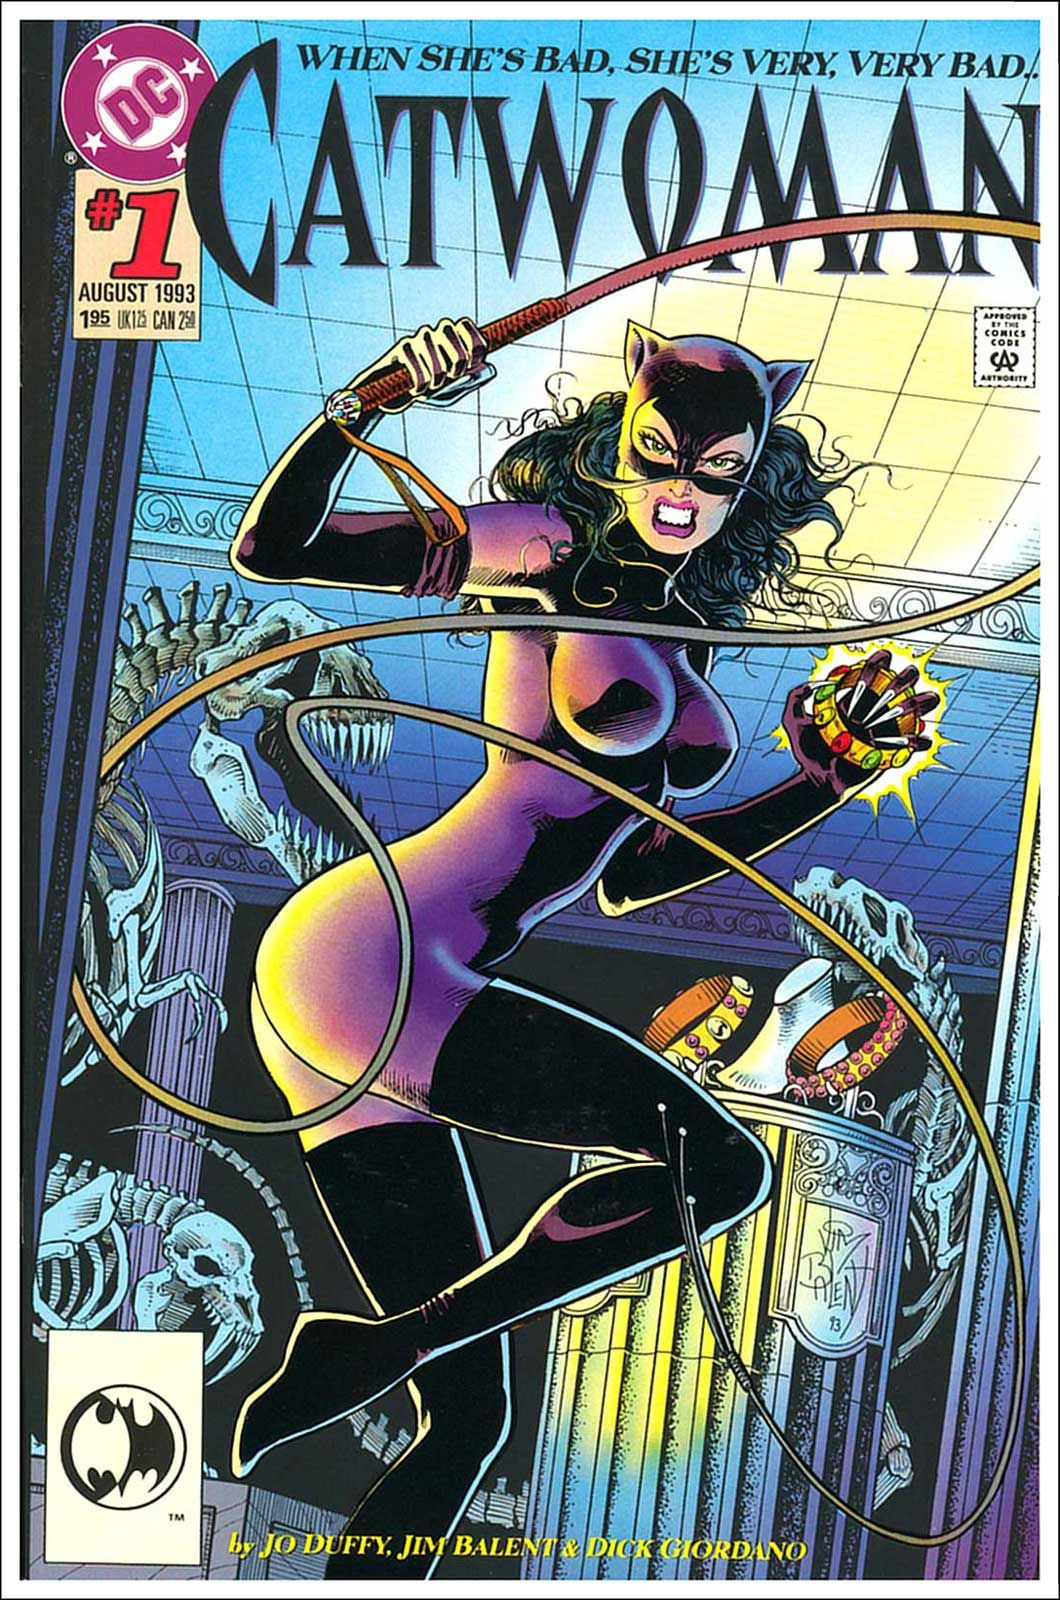 Book Cover Art Database : Catwoman jim balent comics pinterest book cover